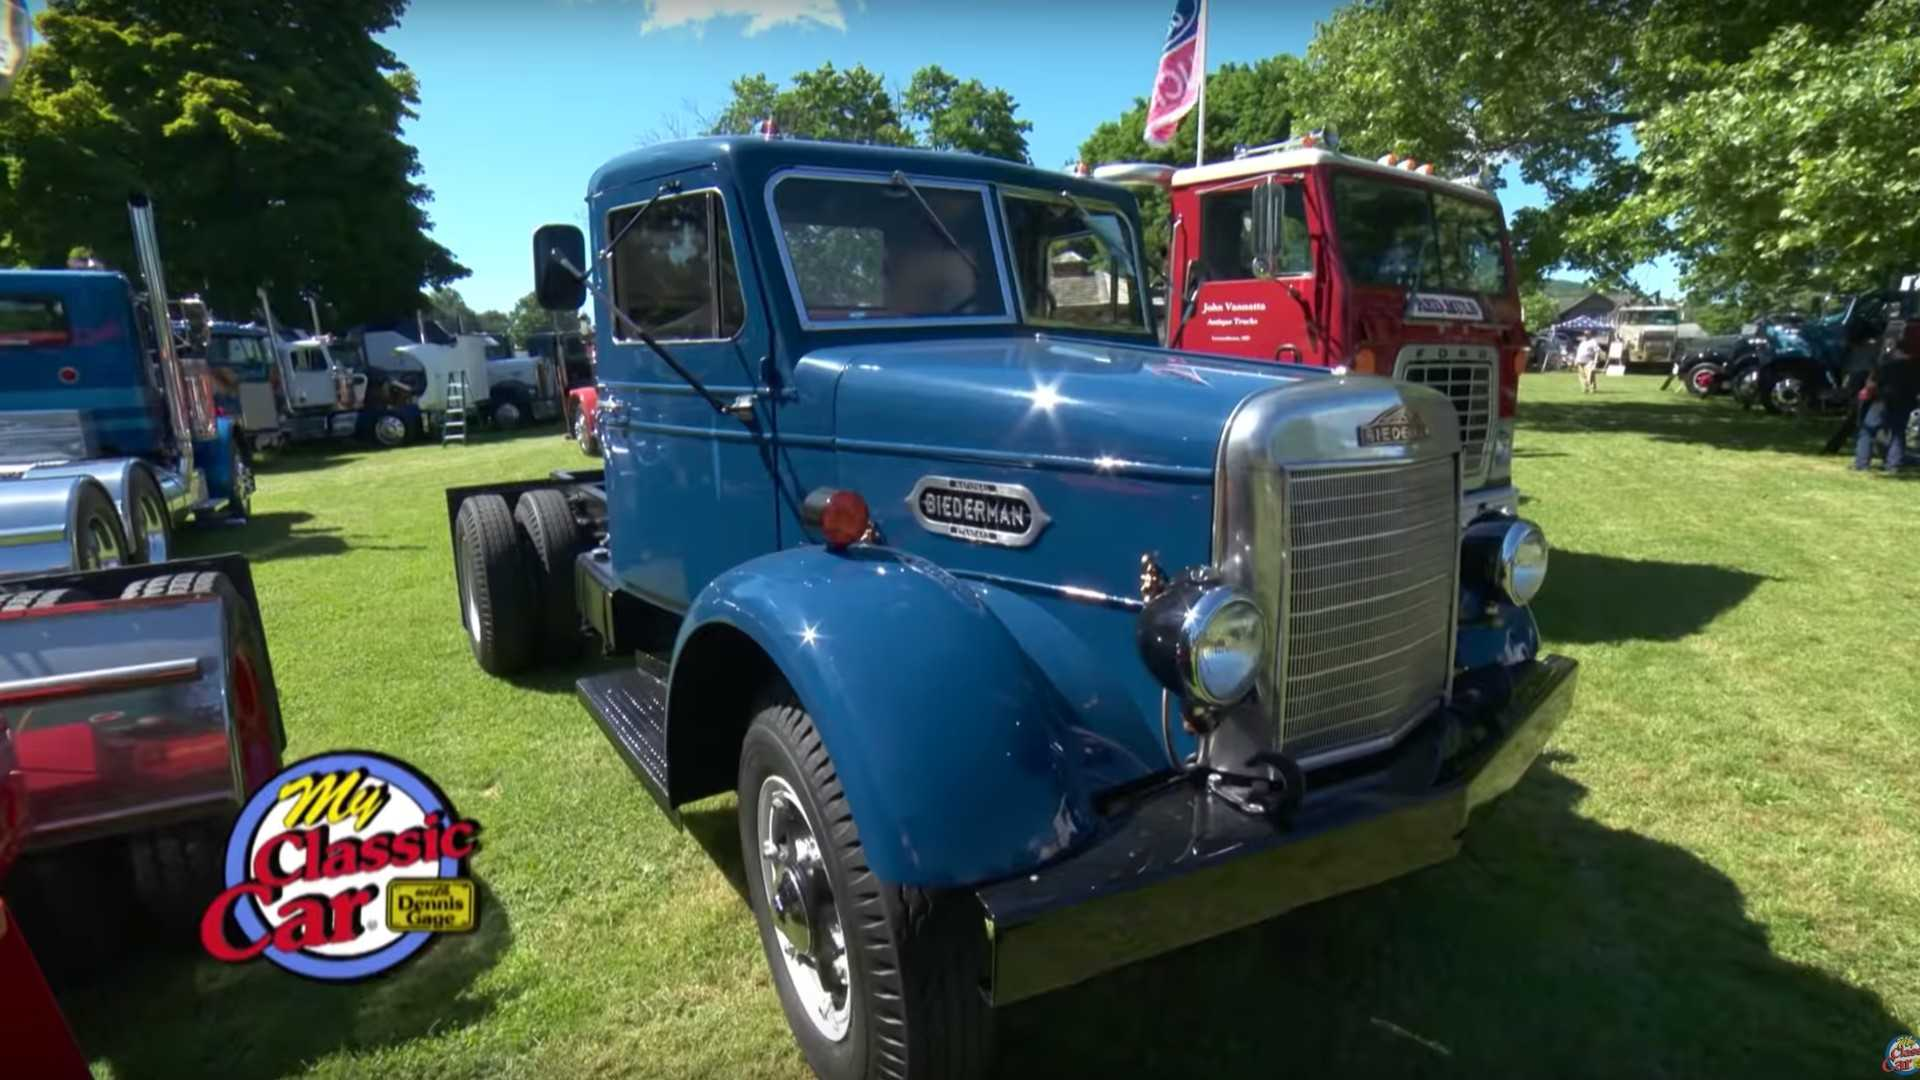 Is this the ultimate classic truck show in America?